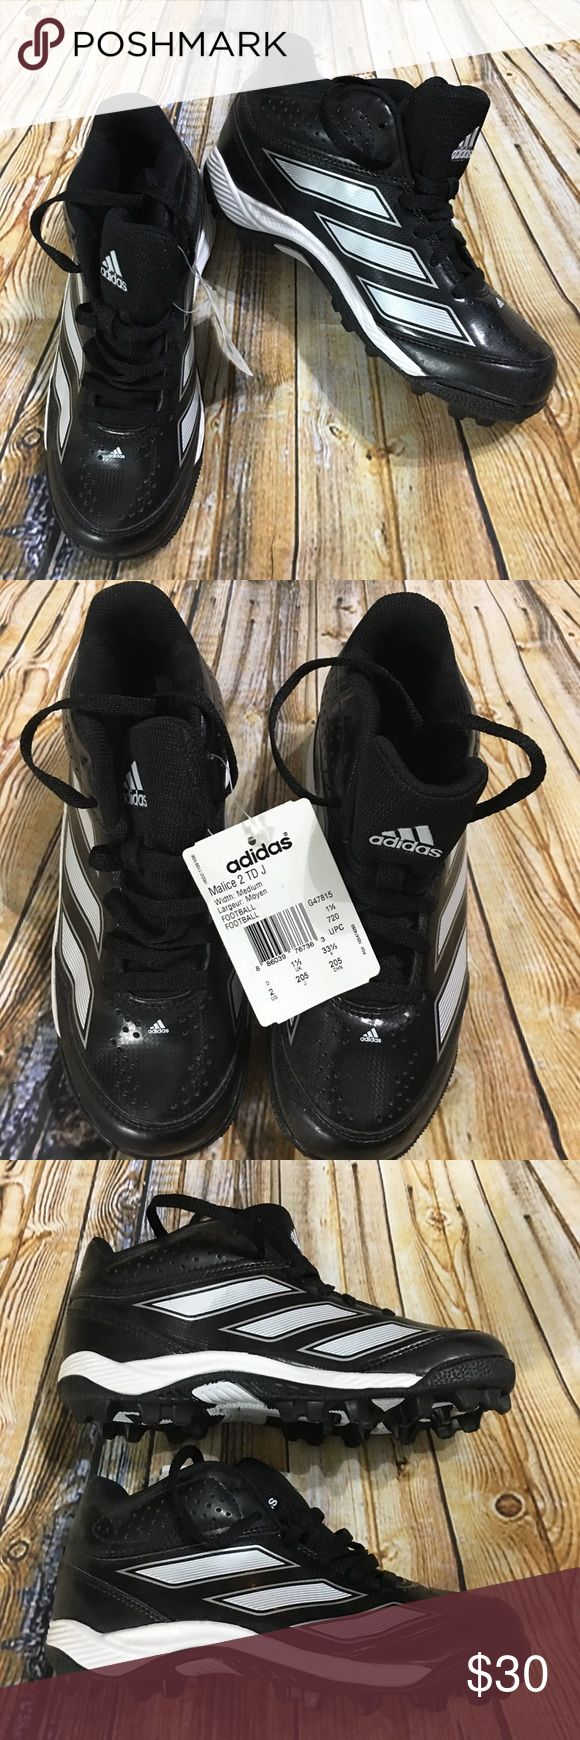 Adidas Malice 2 TD J Youth Football Cleats Size 2 This is a pair of Youth Adidas Malice 2 TD J Black and White Football Cleats Youth Size 2. These cleats are in excellent new condition. Please take a look at all photos for condition and if you have any questions feel free to ask. adidas Shoes